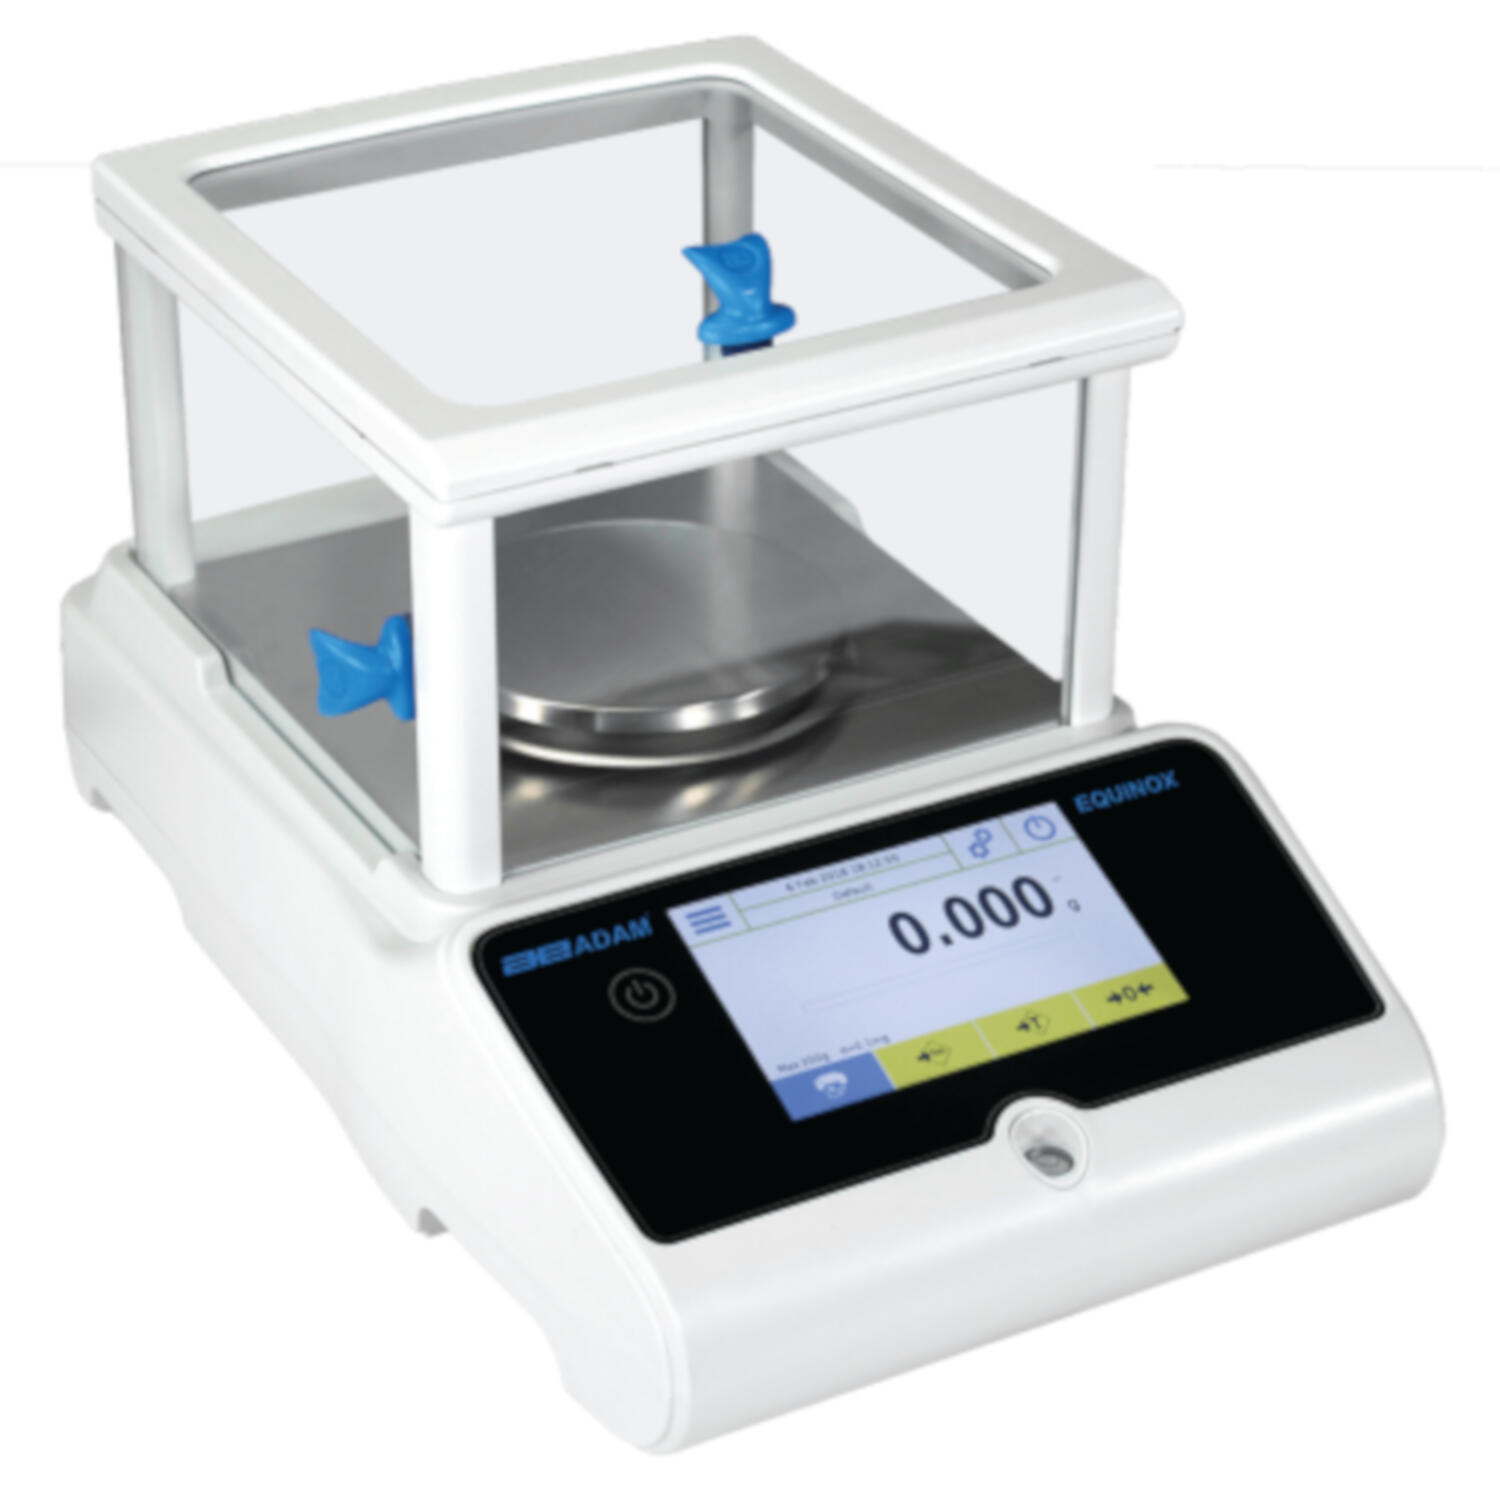 Precision Scale Equinox Precision Balance Capacity 720g Readability 001g Pan Size 110mm Ø